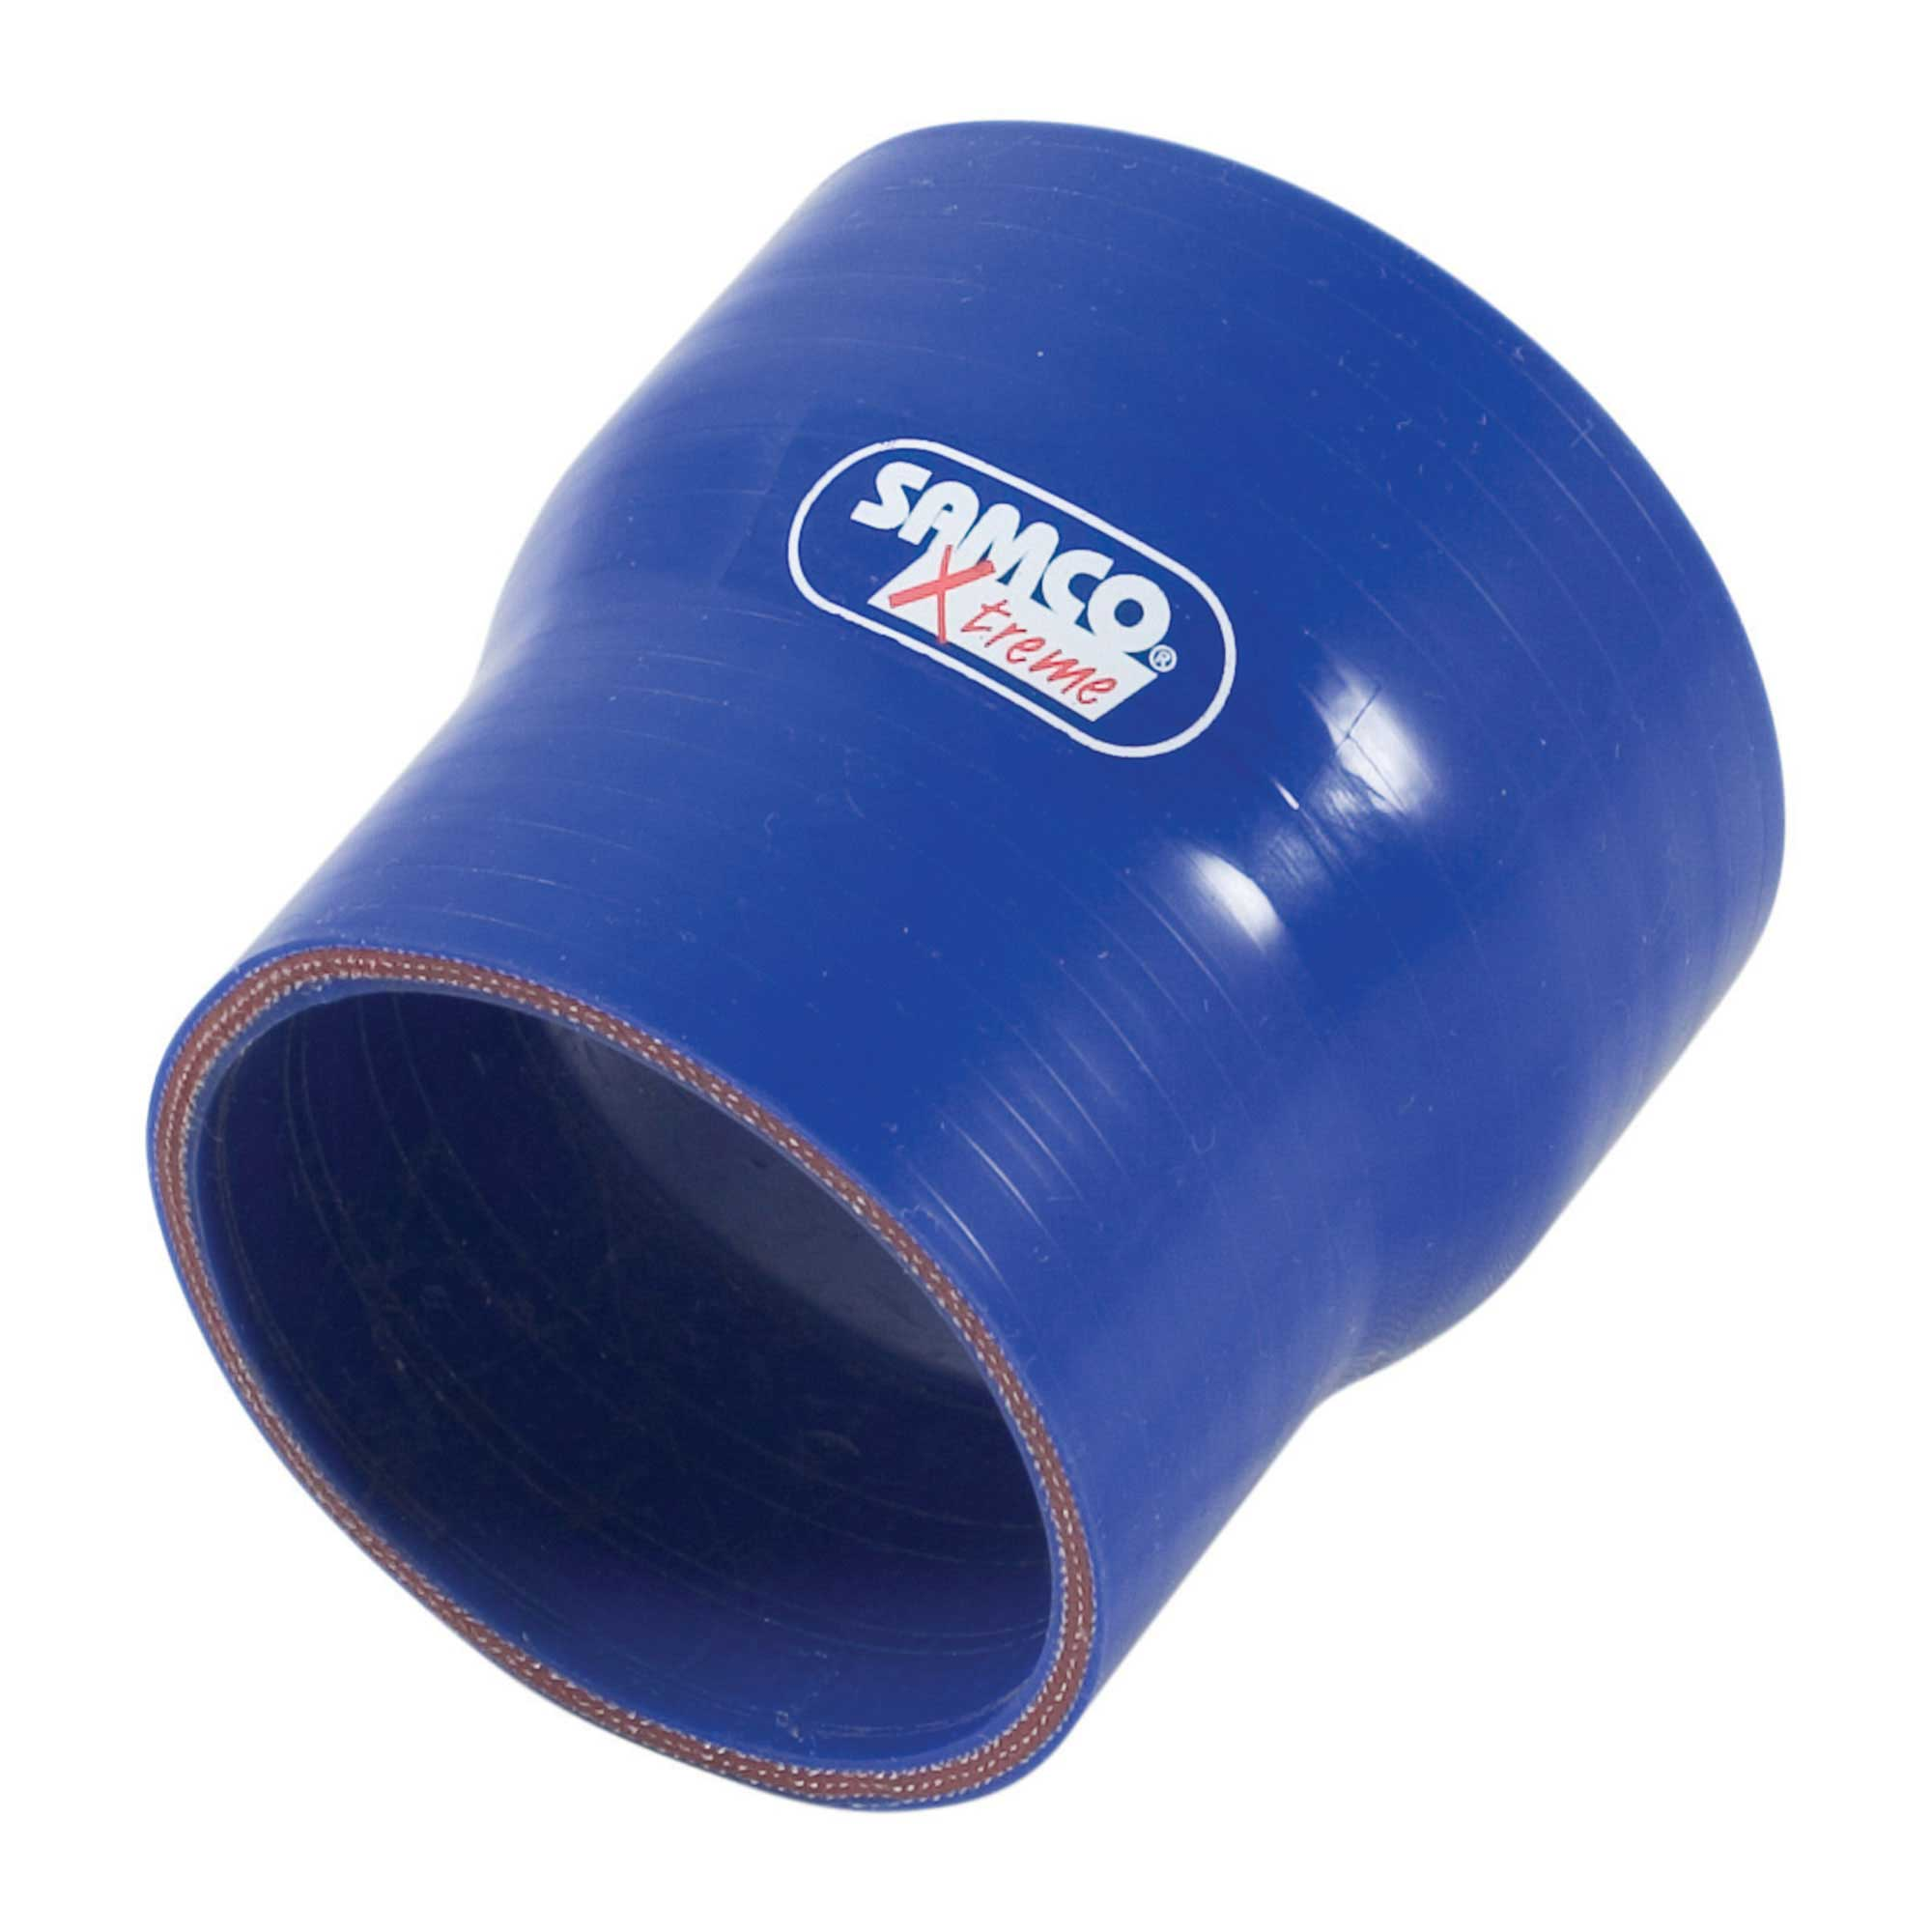 Samco Straight Reducer//Reducing Silicone//Silicon Hose 63-51mm In Blue